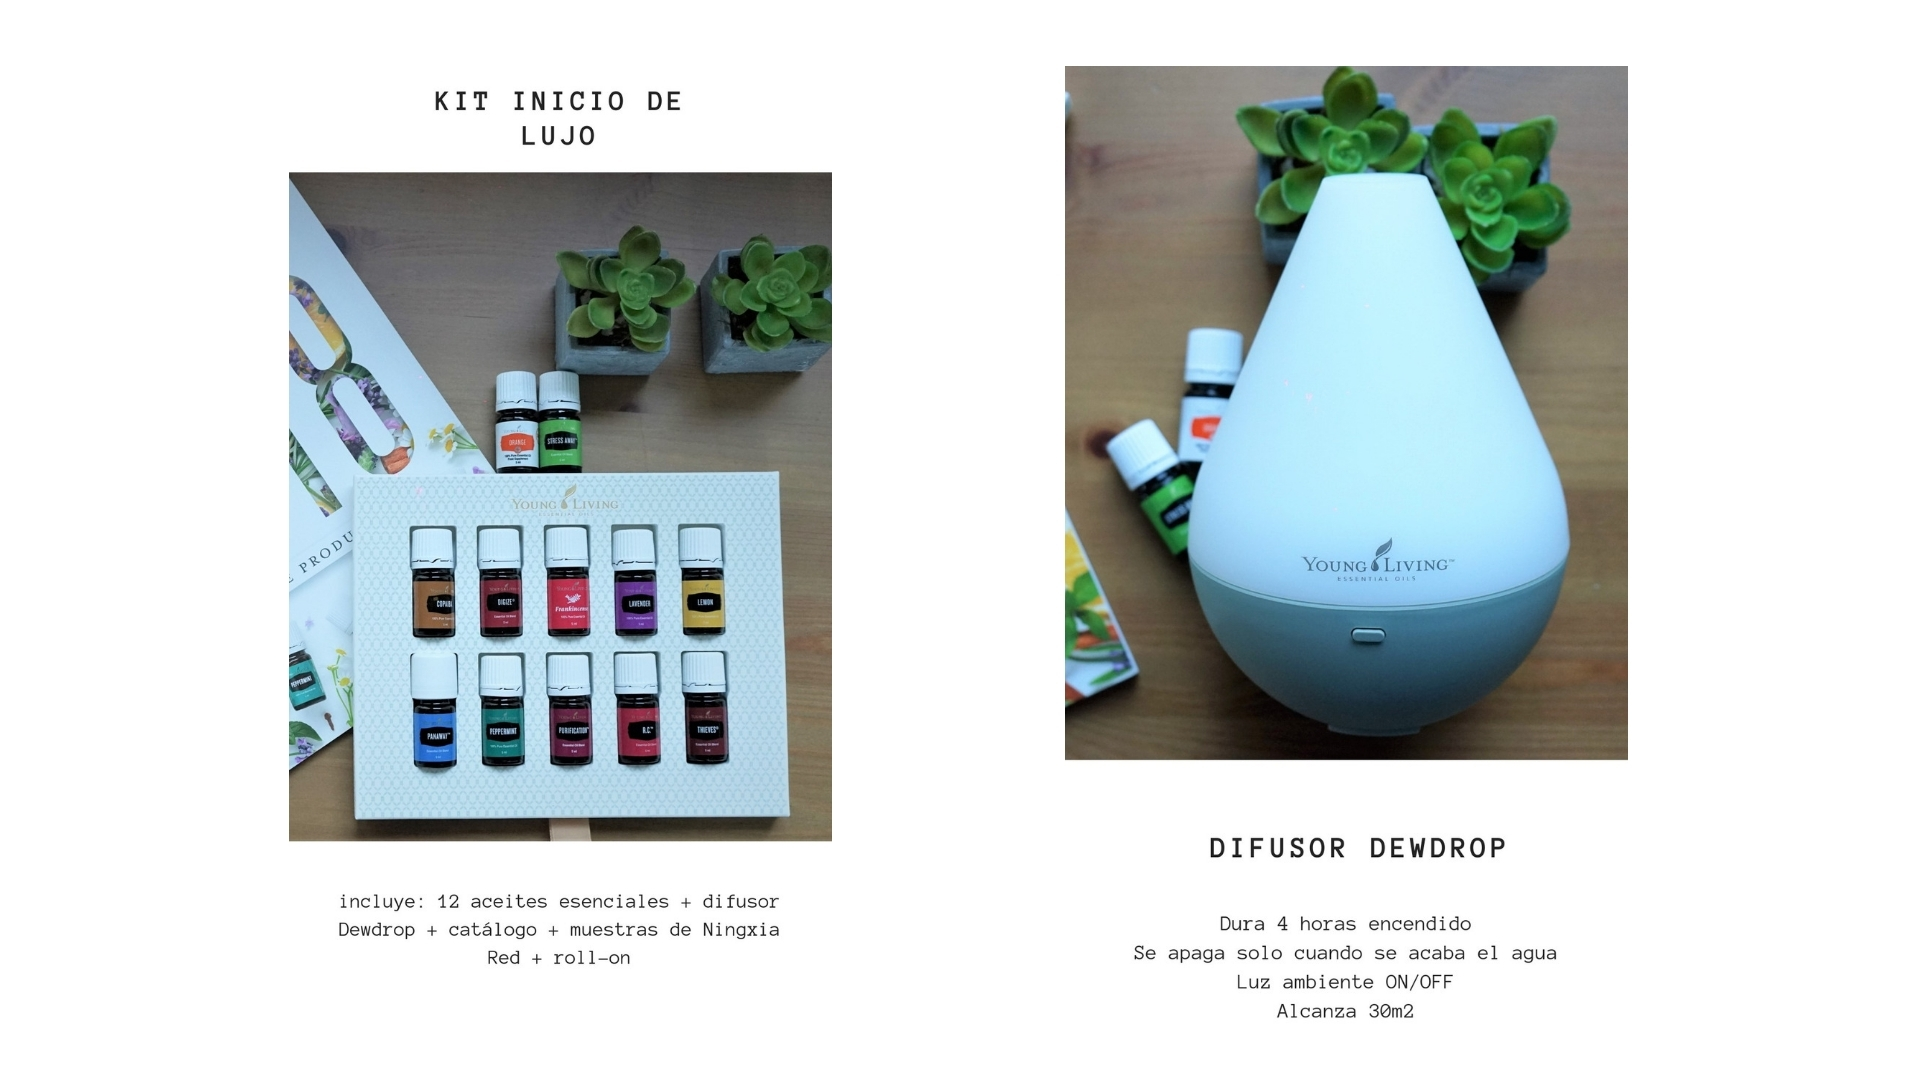 Kit de inicio de Young Living